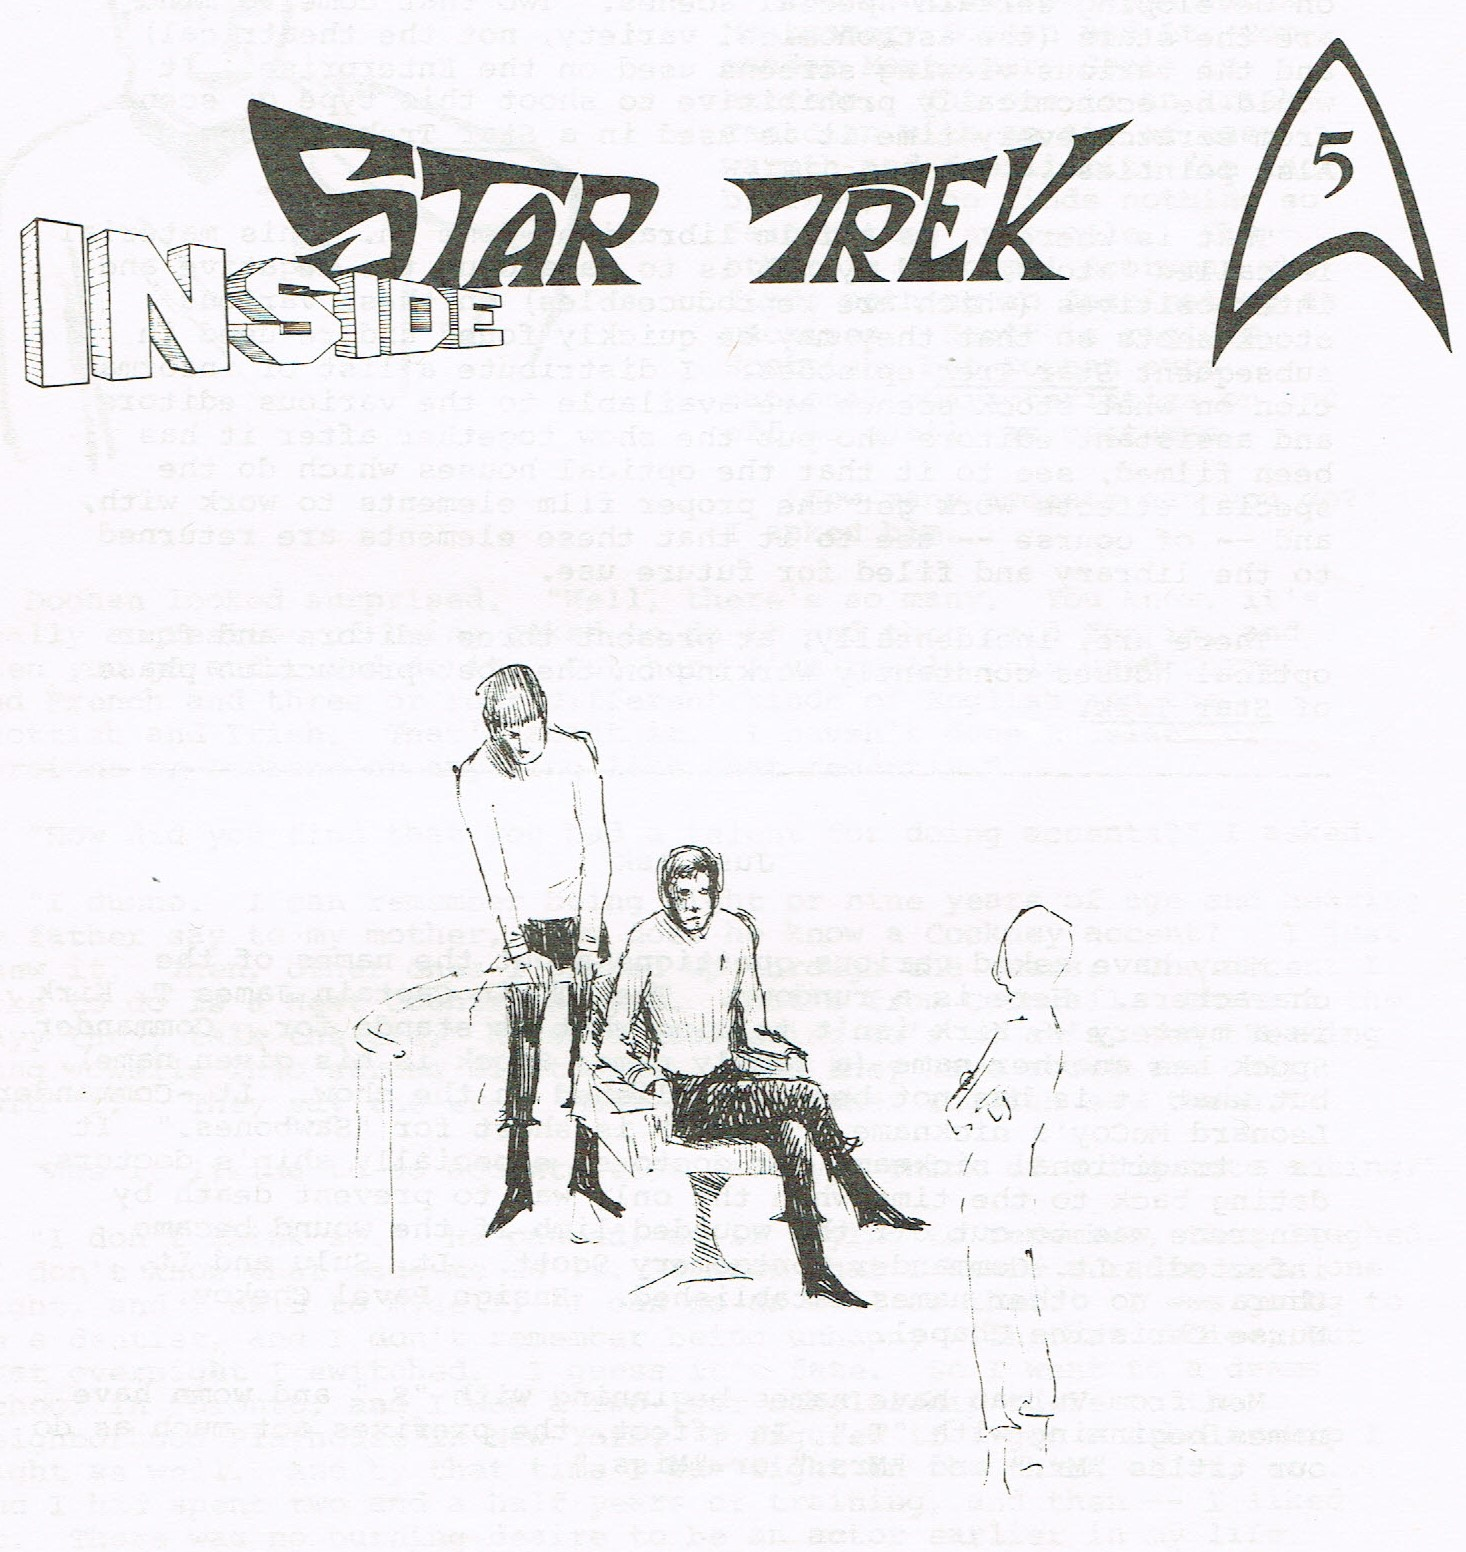 The cover of the Inside Star Trek newsletter, showing a sketch of three crew members on the bridge.